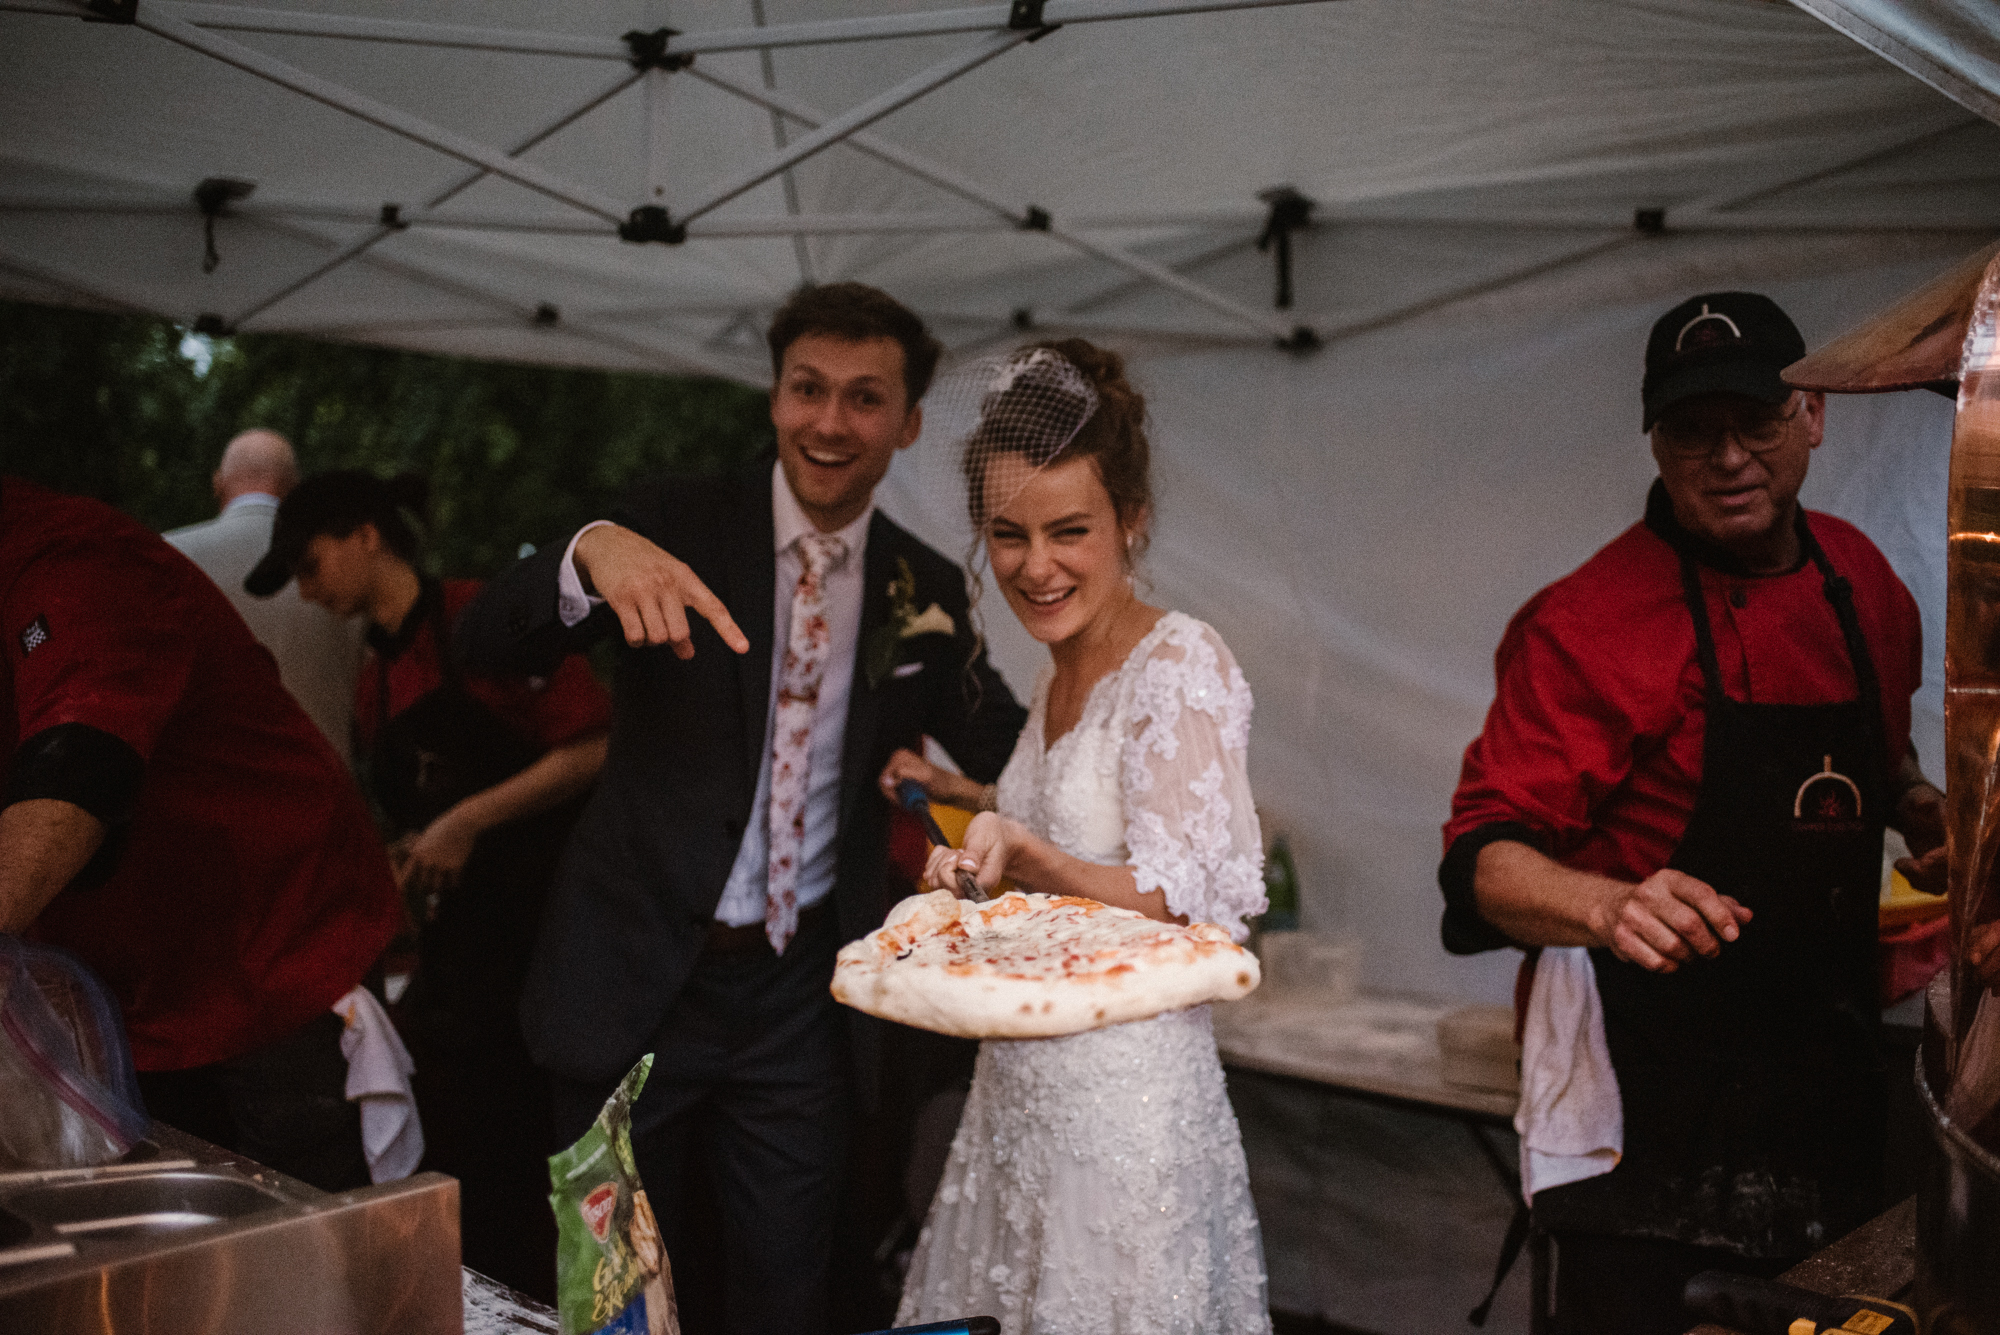 Mairi and Jude - Rainy Backyard Wedding - Intimate Wedding - Fun Reception Photos - Chicago Wedding Photographer - Catholic Wedding - White Sails Creative - Virginia Backyard Wedding Photographer_55.jpg